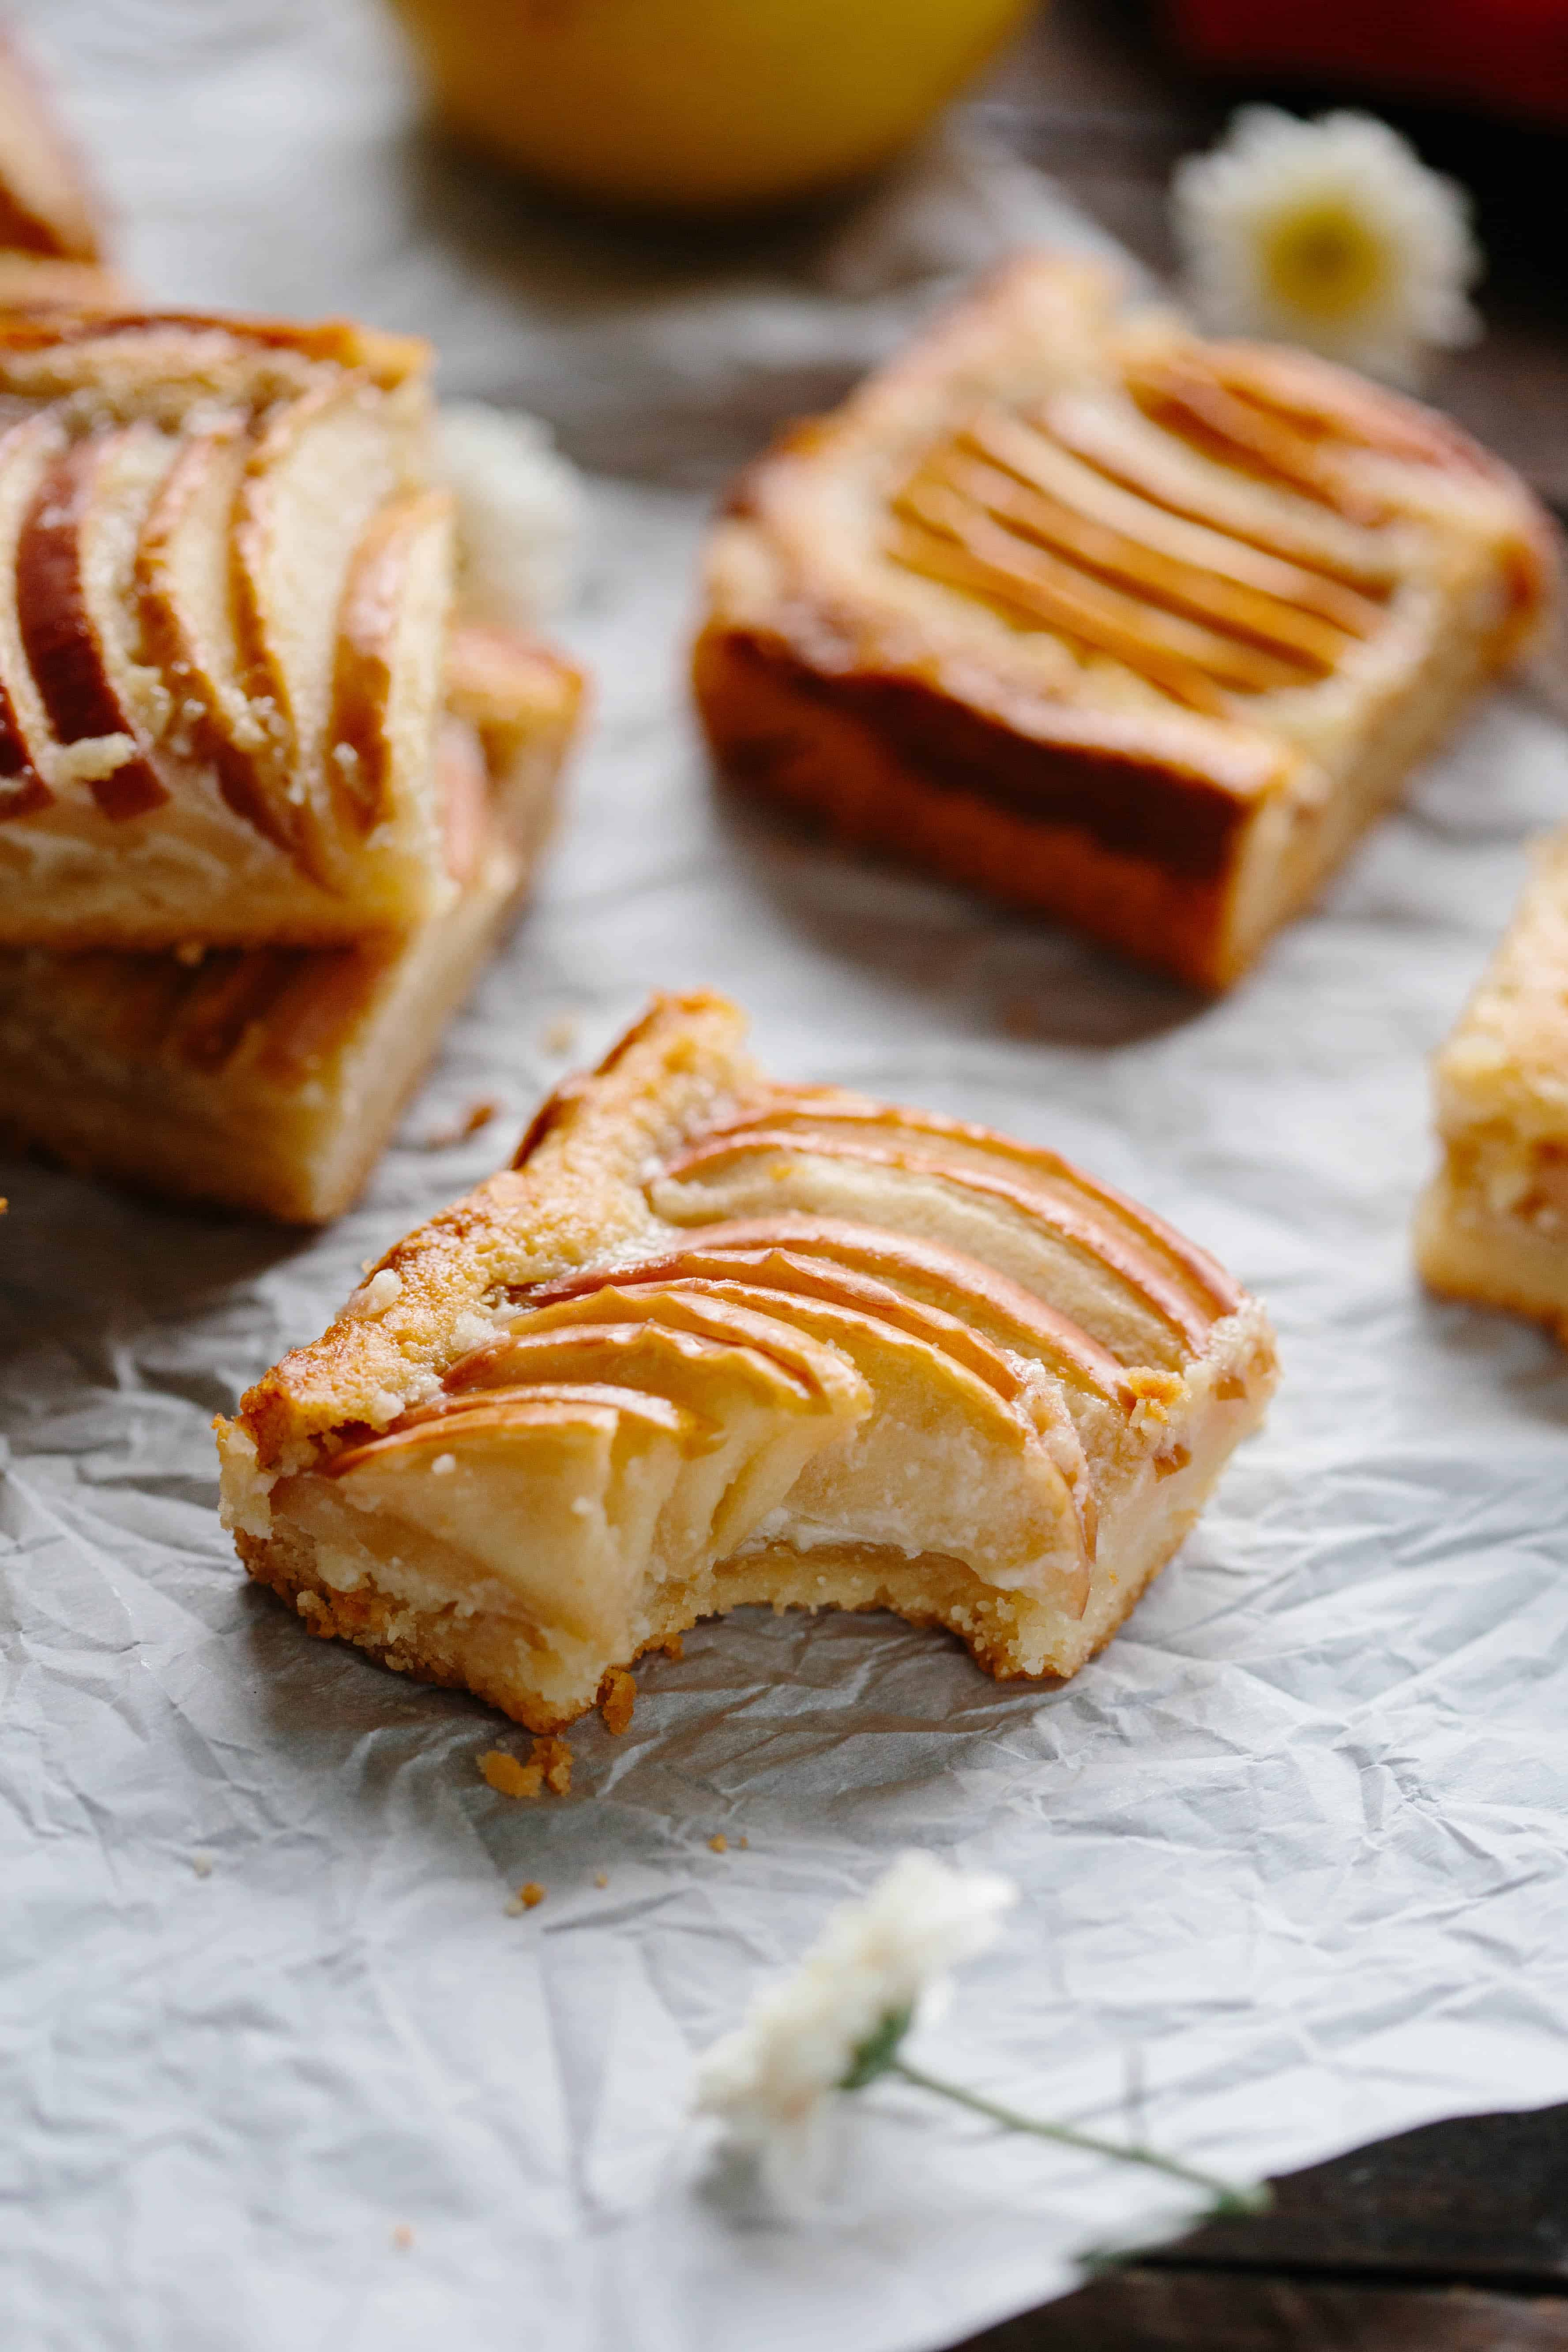 APPLE ALMOND SHORTBREAD BARS   Easy fall dessert recipe! Buttery shortbread crust with almond frangipane and tart apples baked in. #easy #fall #recipe #dessert #bars #cookies #apple #almond #frangipane   ColeyCooks.com